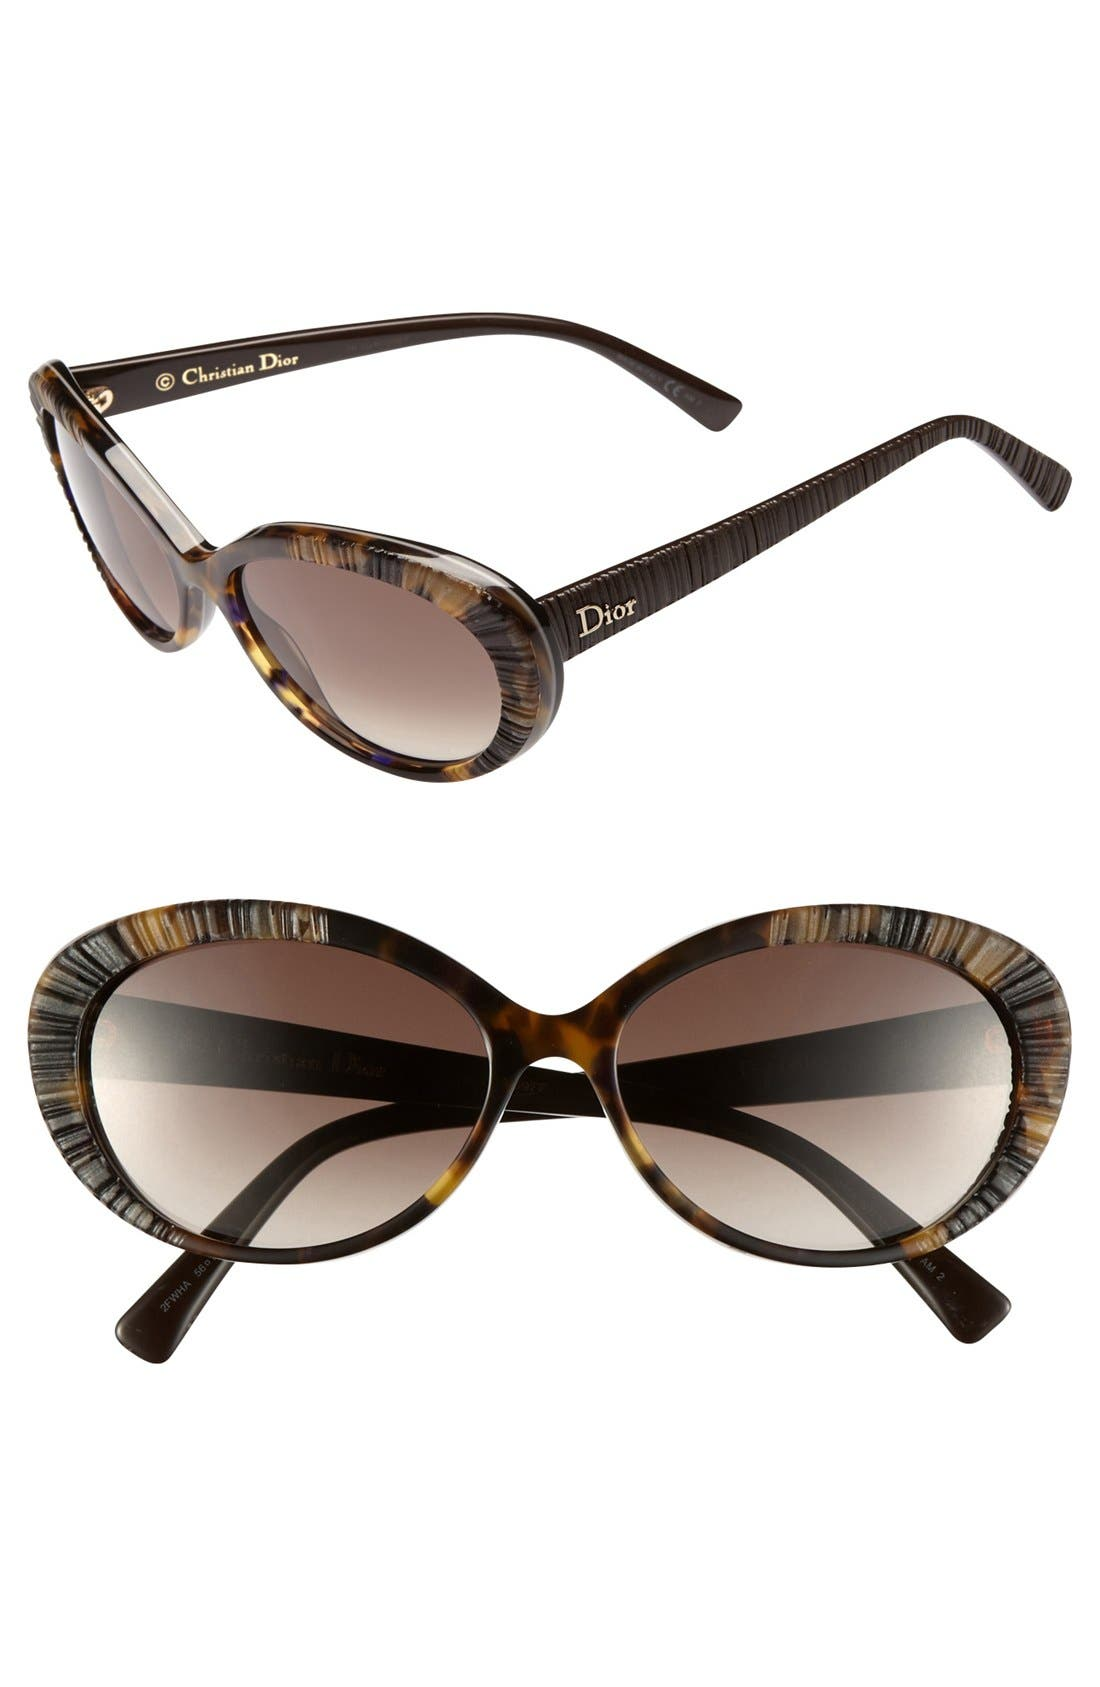 Alternate Image 1 Selected - Christian Dior 'Taffeta 3/S' 56mm Sunglasses